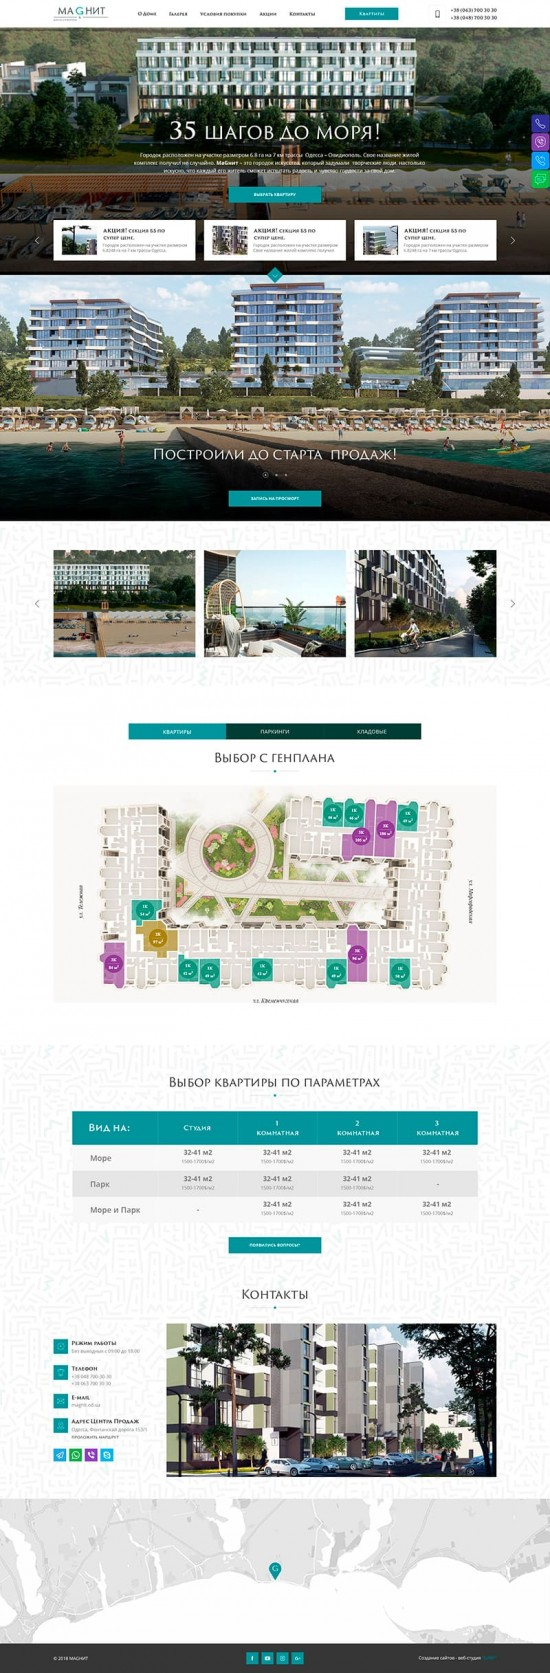 Website for Magnet housing complex 2 DESCTOP - Jump.team